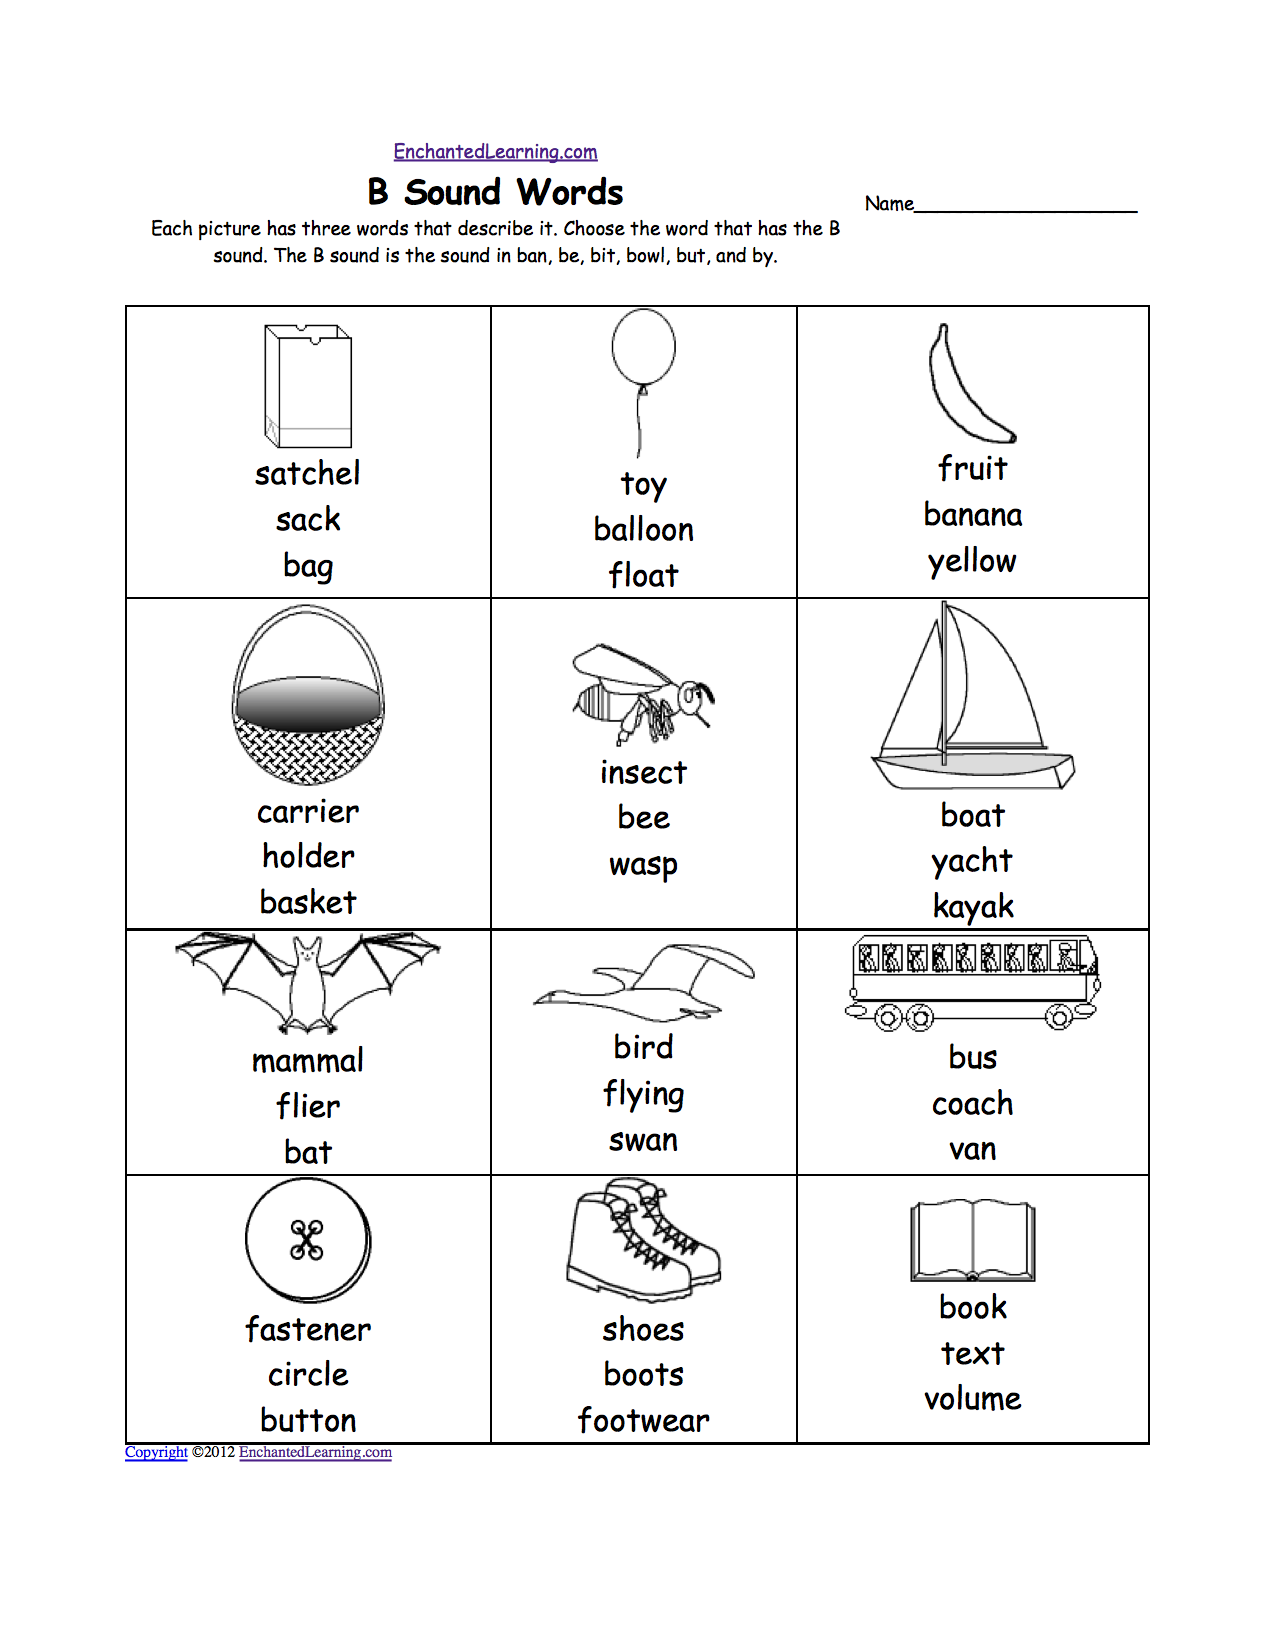 Weirdmailus  Personable Phonics Worksheets Multiple Choice Worksheets To Print  With Handsome Quotbquot Sound Phonics Worksheet Multiple Choice Each Picture Has Three Words That Describe It Choose The Word That Has A Quotbquot Sound The Quotbquot Sound Is The Sound  With Delightful Find Slope From Two Points Worksheet Also Practice Worksheets In Addition Worksheets Multiplication And Summer Worksheet As Well As War Of  Worksheets Additionally Identifying Place Value Worksheets From Enchantedlearningcom With Weirdmailus  Handsome Phonics Worksheets Multiple Choice Worksheets To Print  With Delightful Quotbquot Sound Phonics Worksheet Multiple Choice Each Picture Has Three Words That Describe It Choose The Word That Has A Quotbquot Sound The Quotbquot Sound Is The Sound  And Personable Find Slope From Two Points Worksheet Also Practice Worksheets In Addition Worksheets Multiplication From Enchantedlearningcom